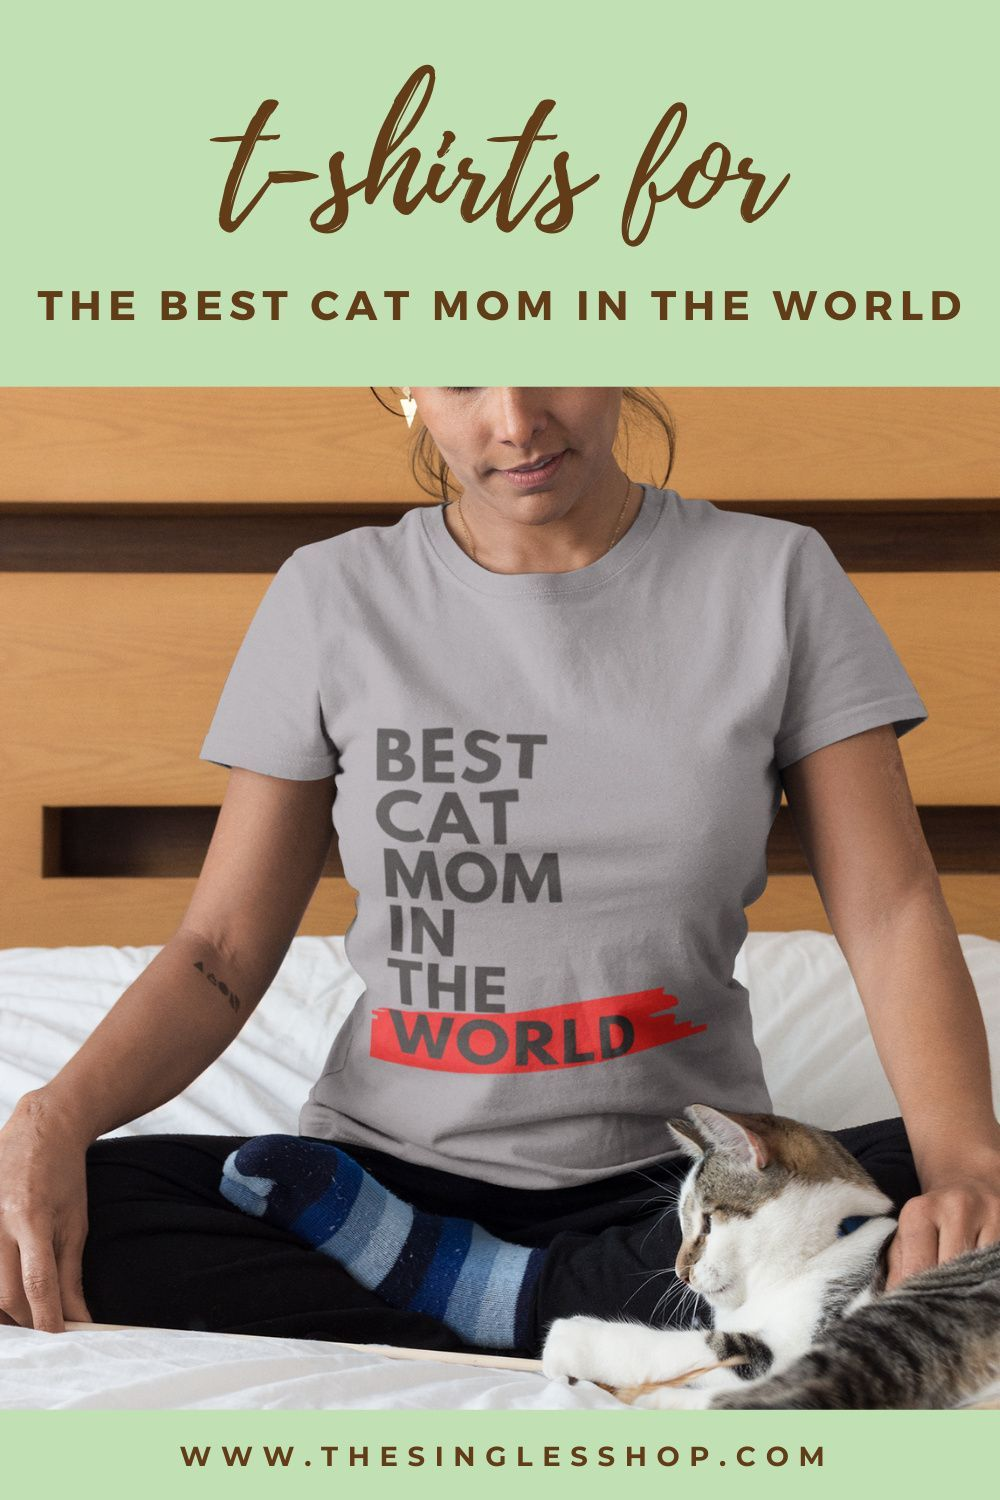 Best t-shirts for the best cat mom in the world! Yes YOU! Pick your favorite t-shirt now. #catlovers #tshirt #tshirtdesign #tshirtsforwomen #catfashion